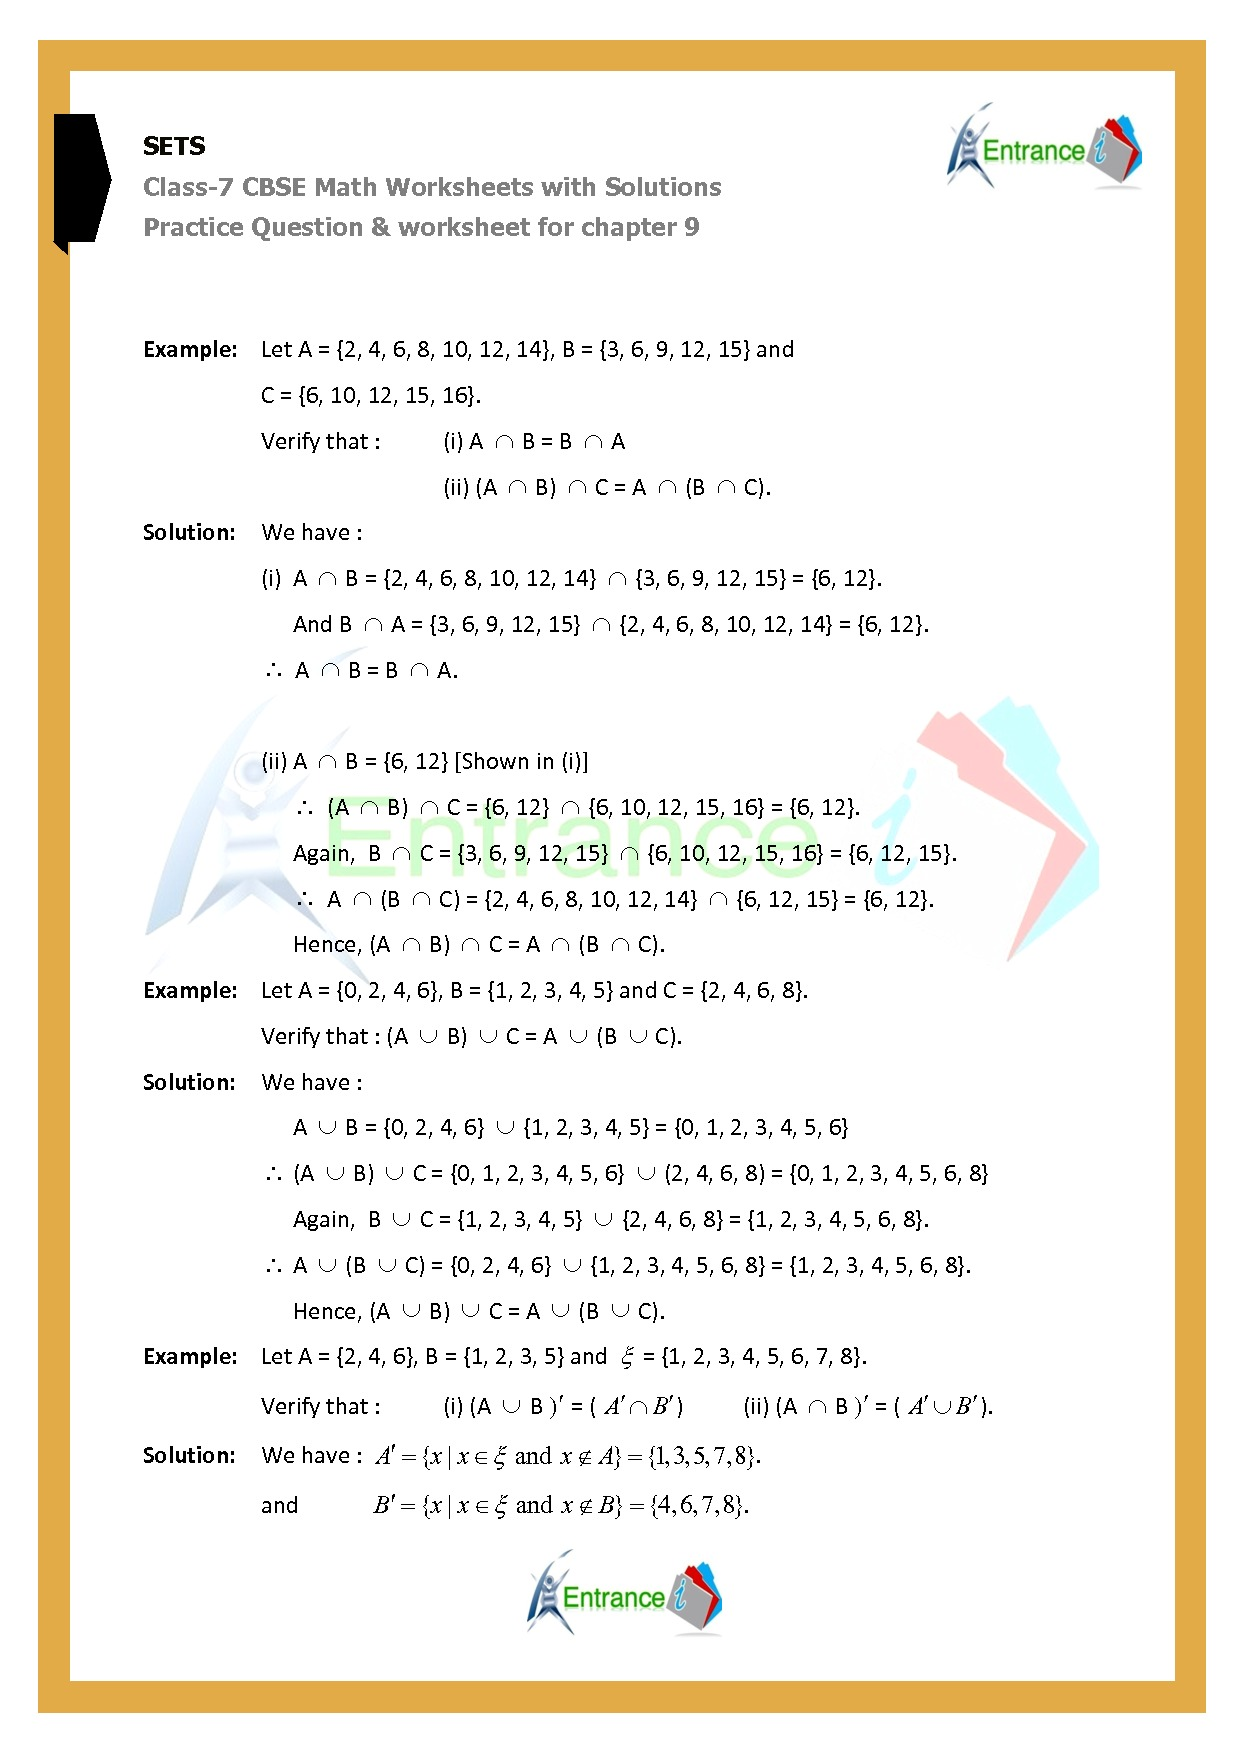 Worksheet For Class 7 Maths For Chapter 9 Sets